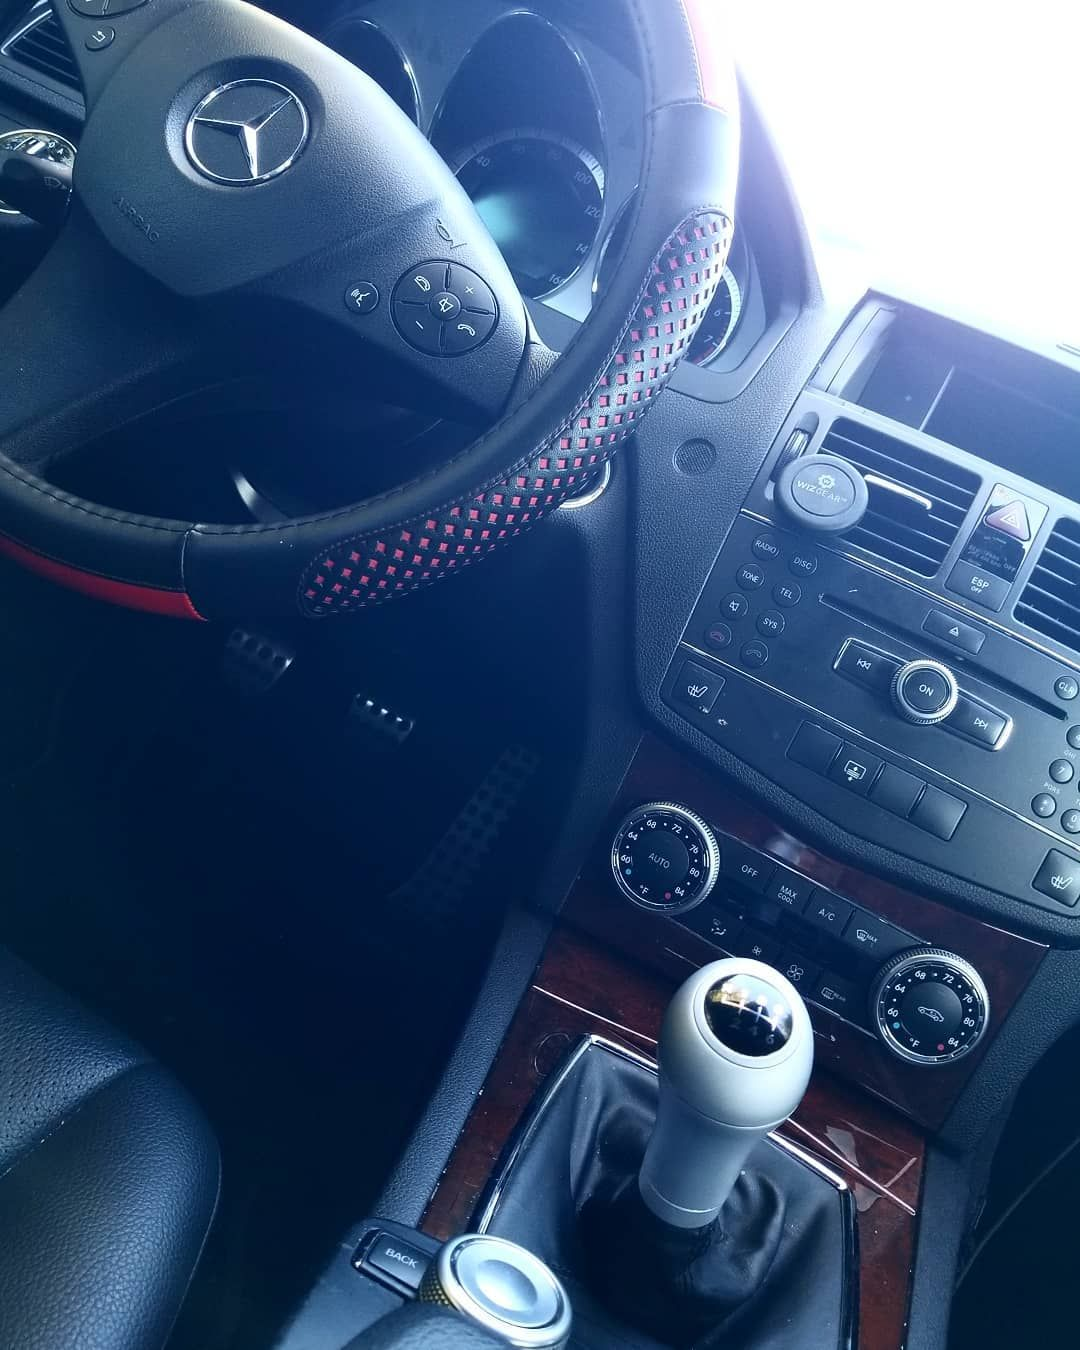 3 Pedals And A Shifter Or Gtfo According To Mercedes Benz Less Than 200 Of These Were Made Savet 3 Pedals A Stick Shift Mercedes Benz Manual Transmission